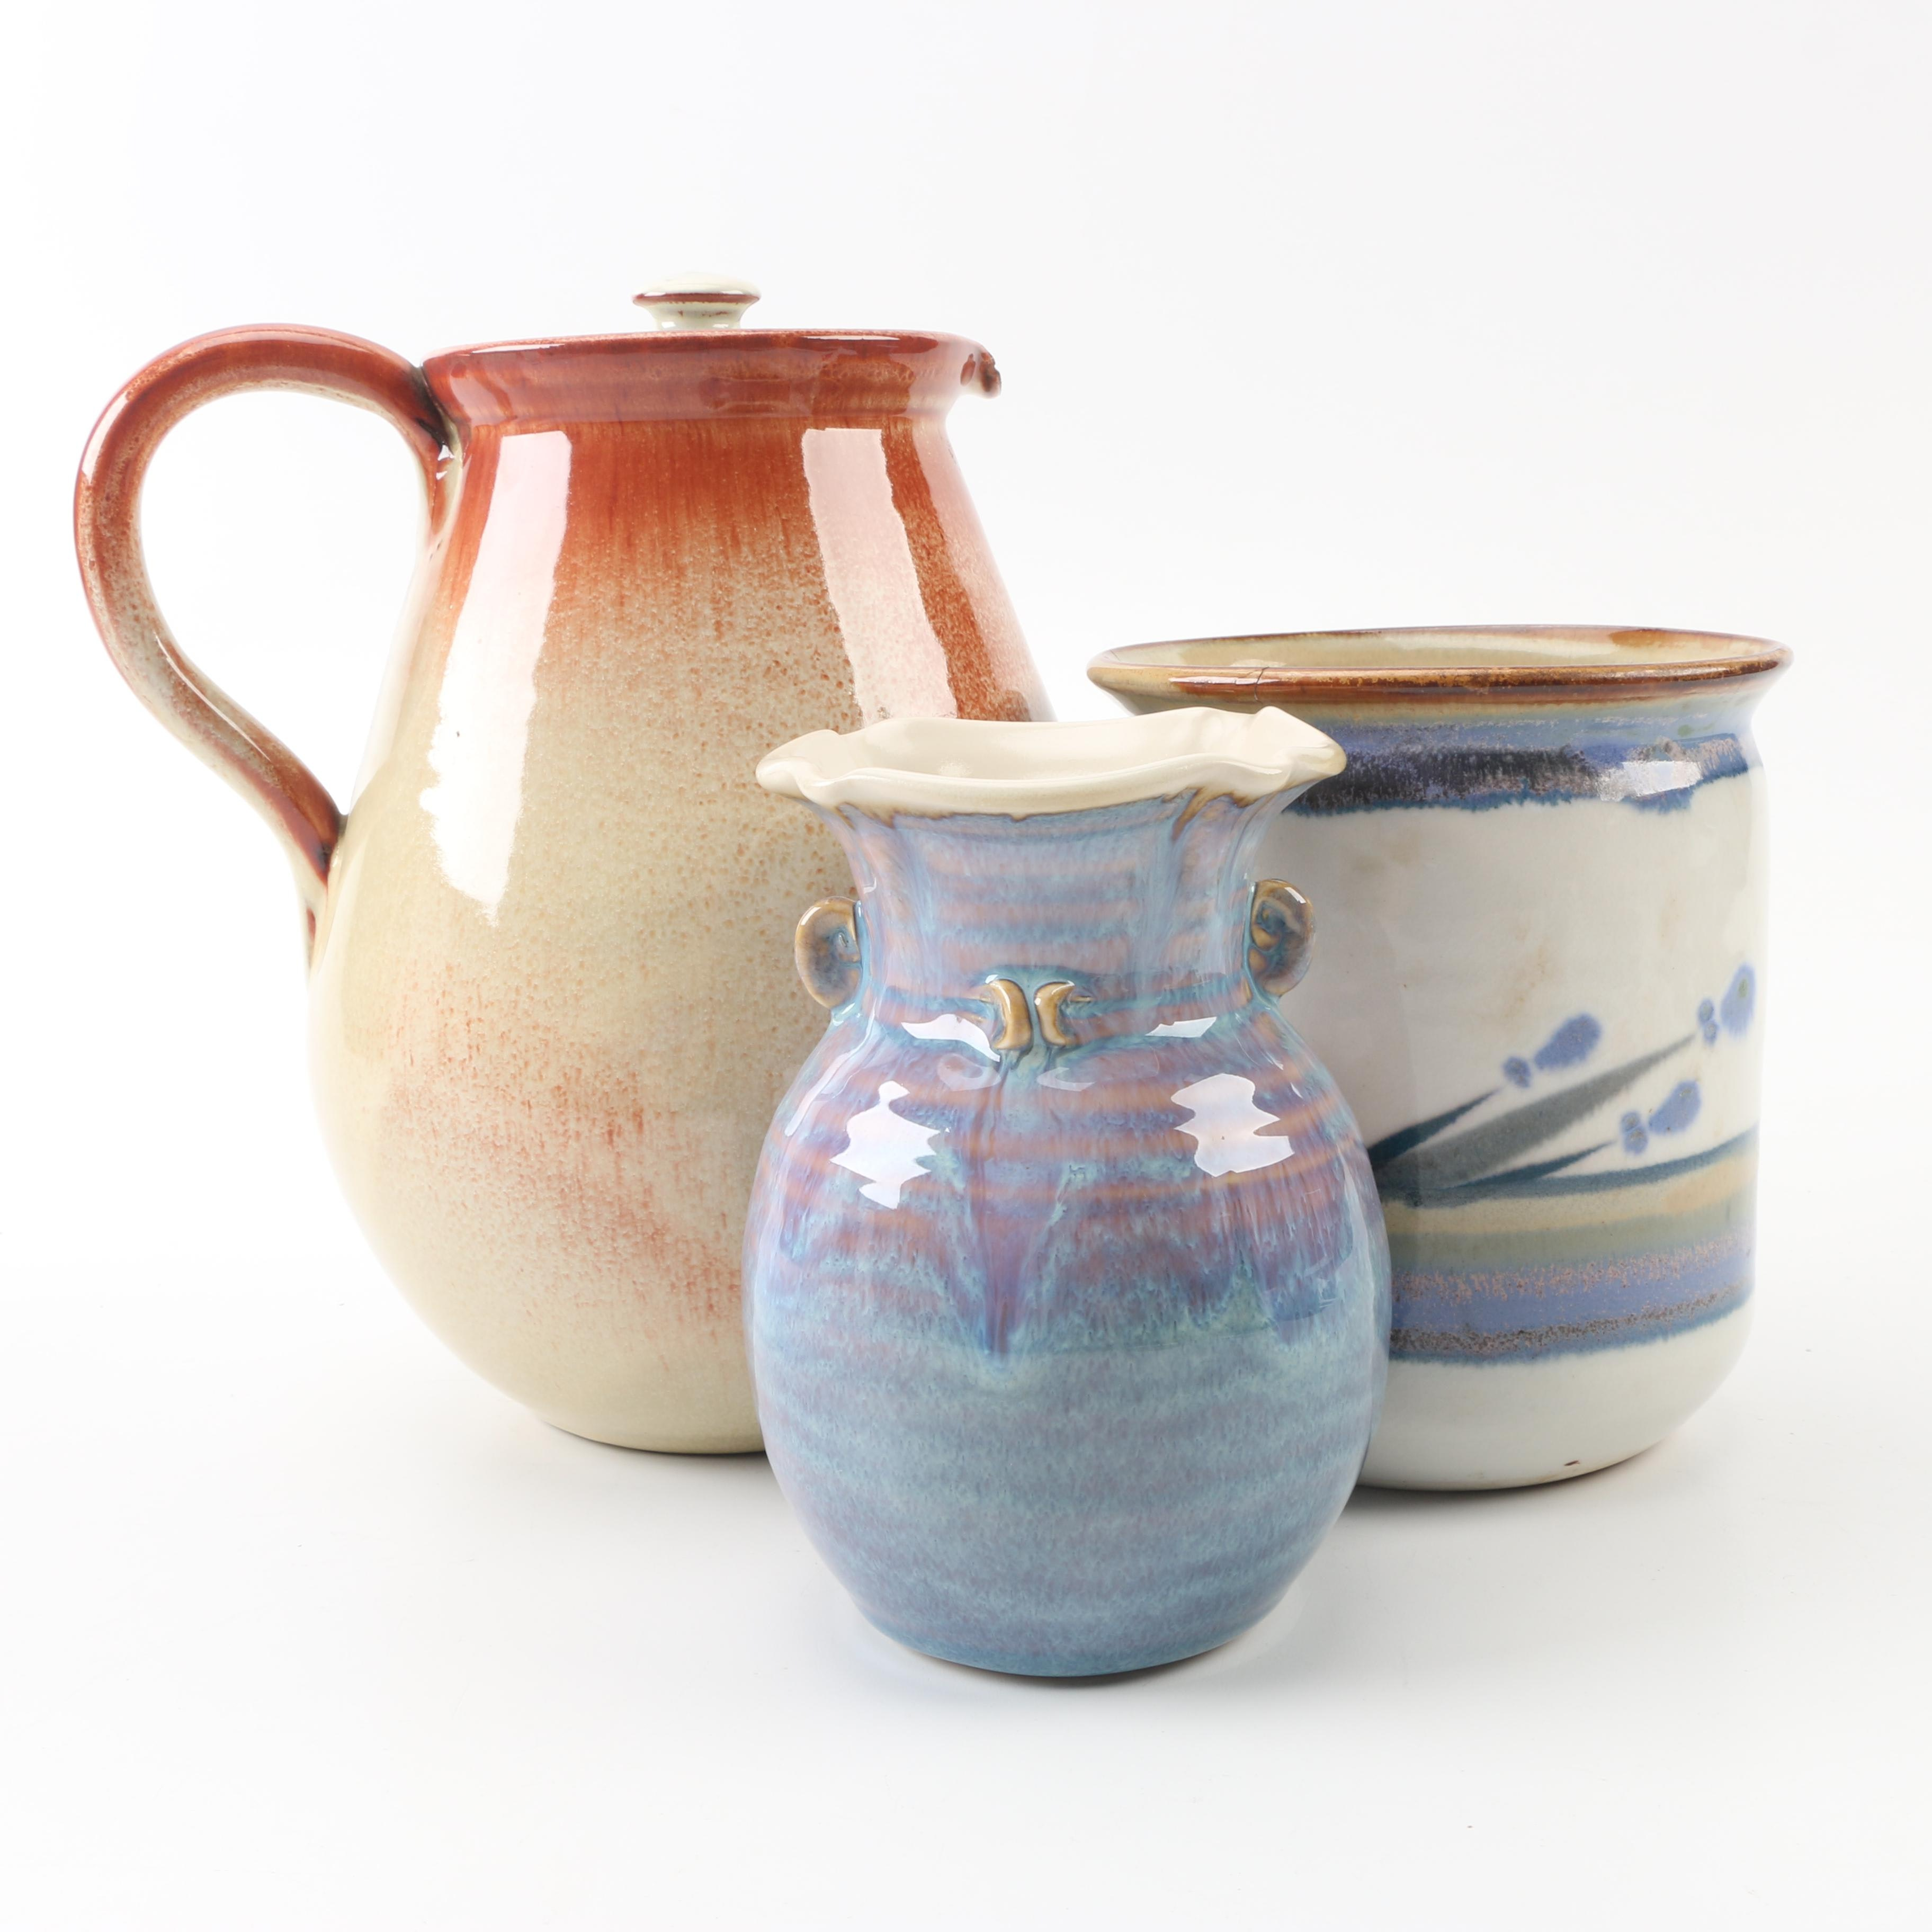 Laconia and Aurora and Other Studio Pottery